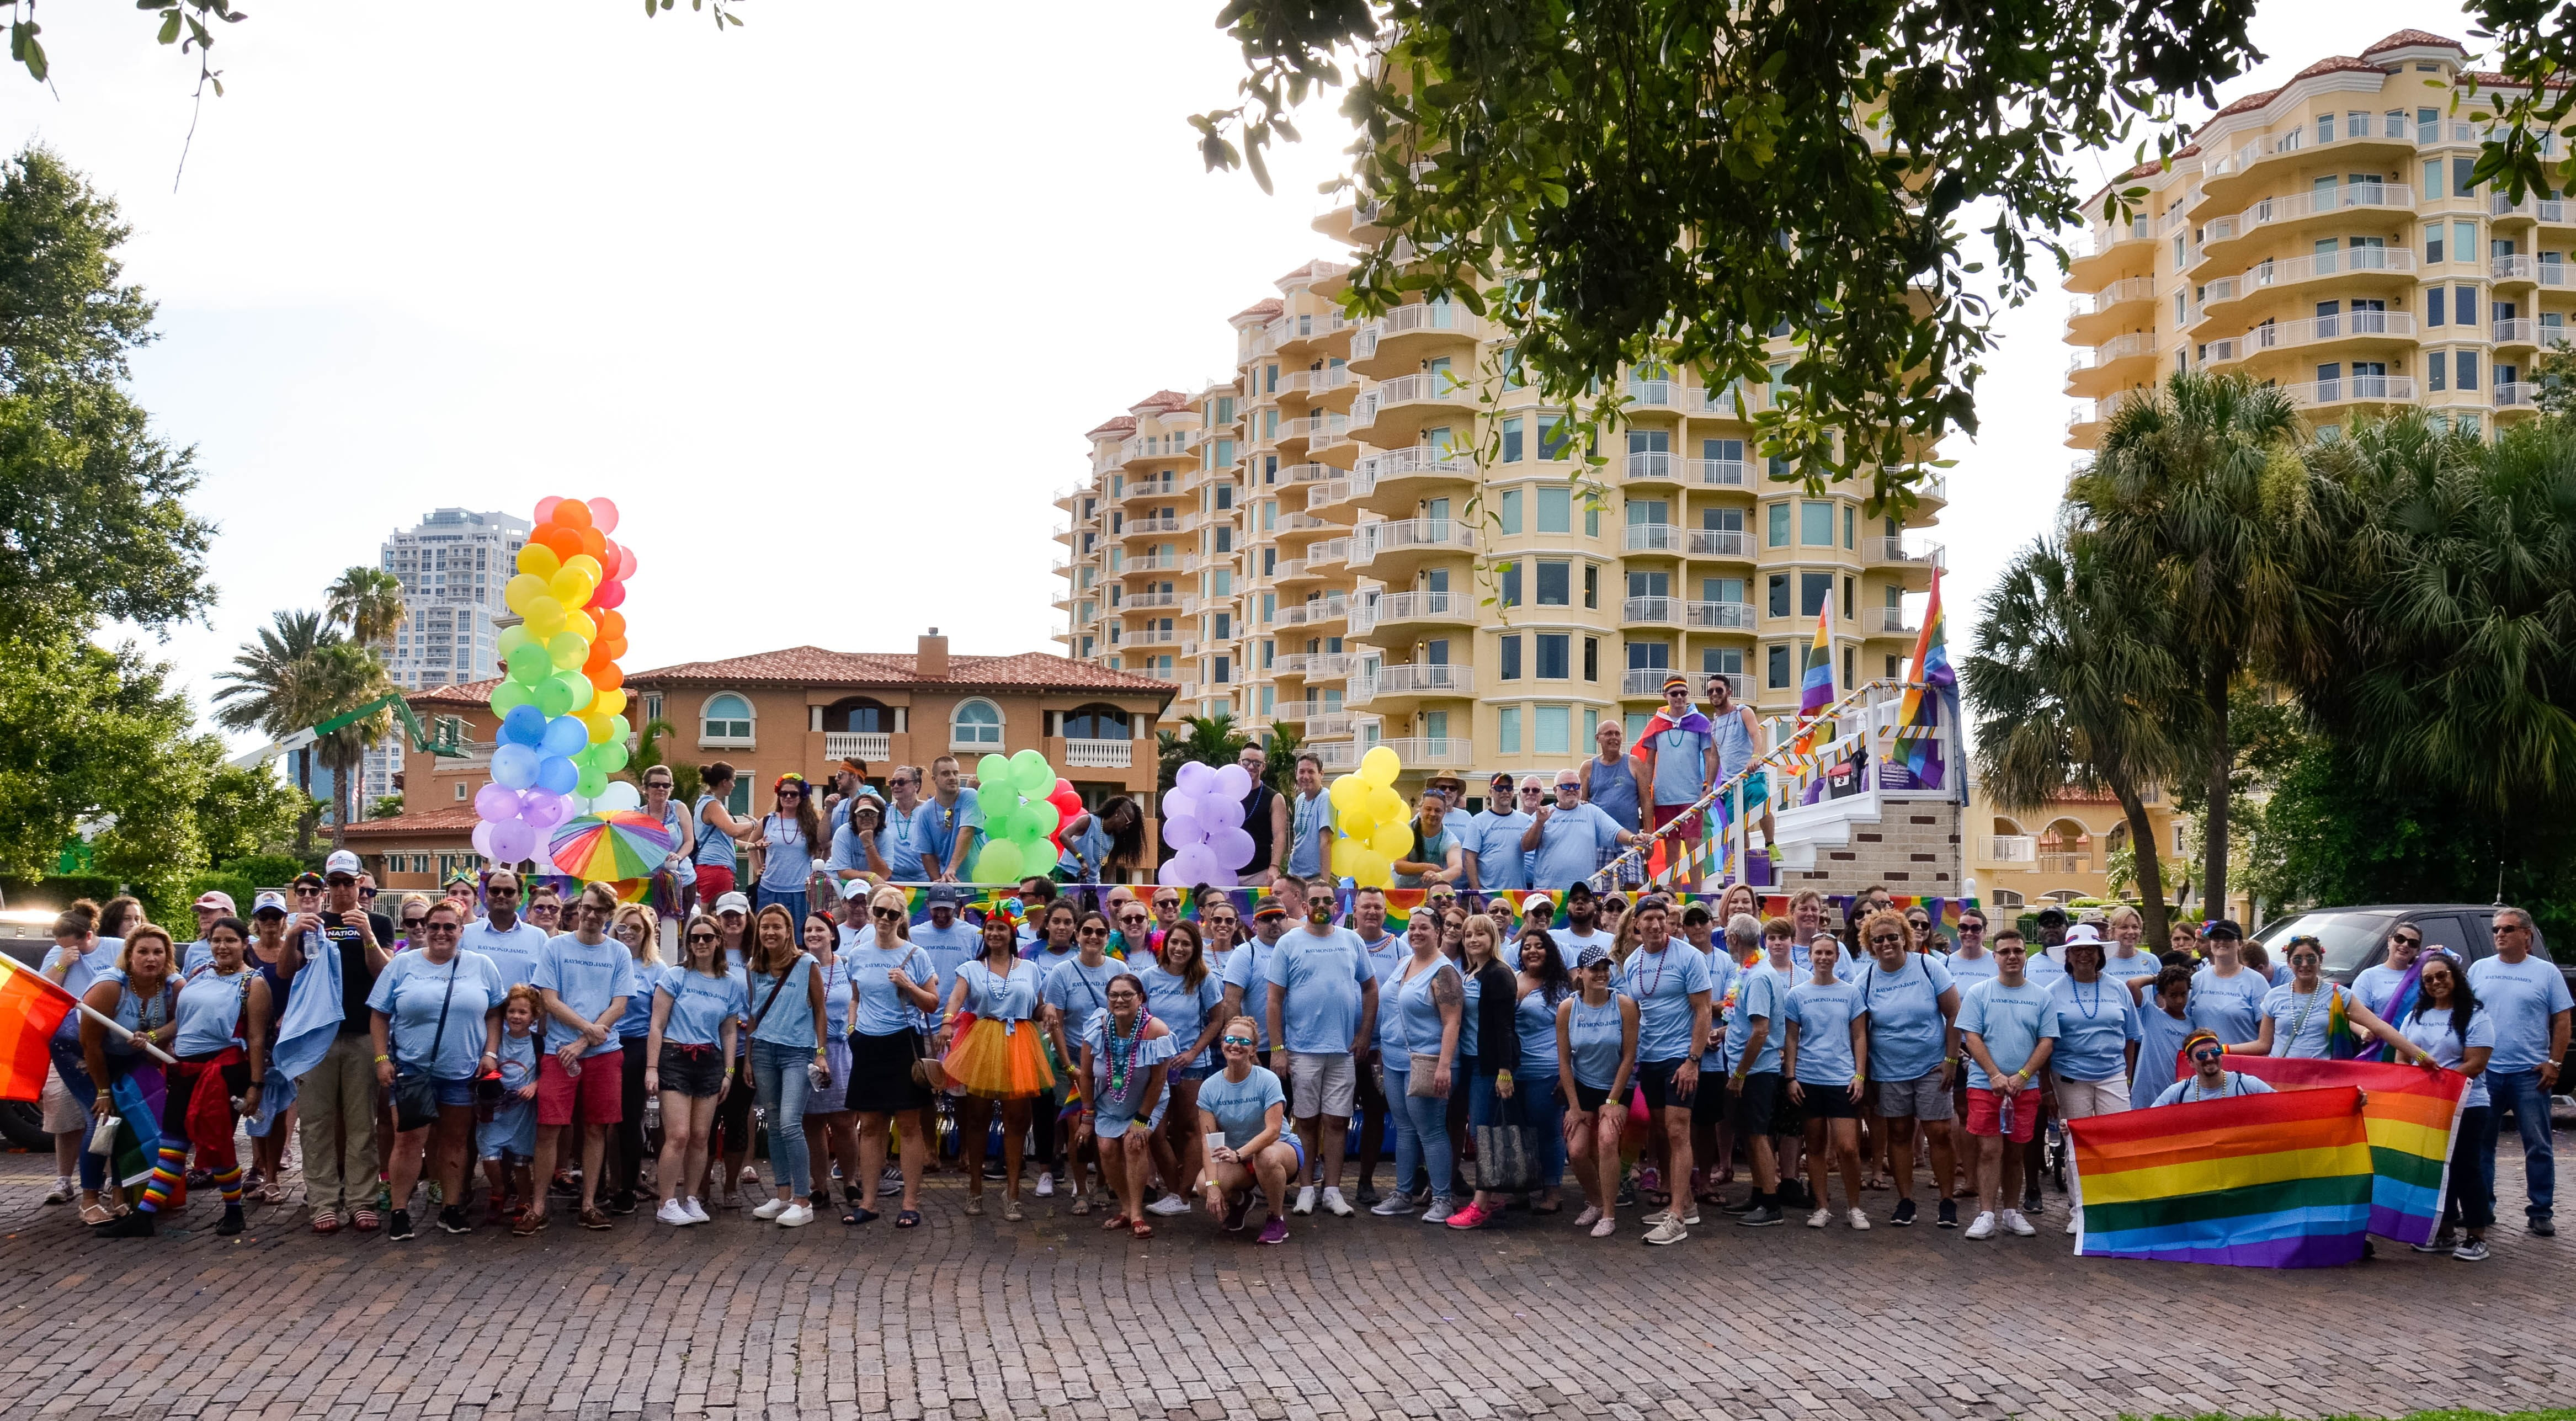 Associates, family members and friends attend the St. Petersburg Pride Parade to celebrate the LGBTQA+ community